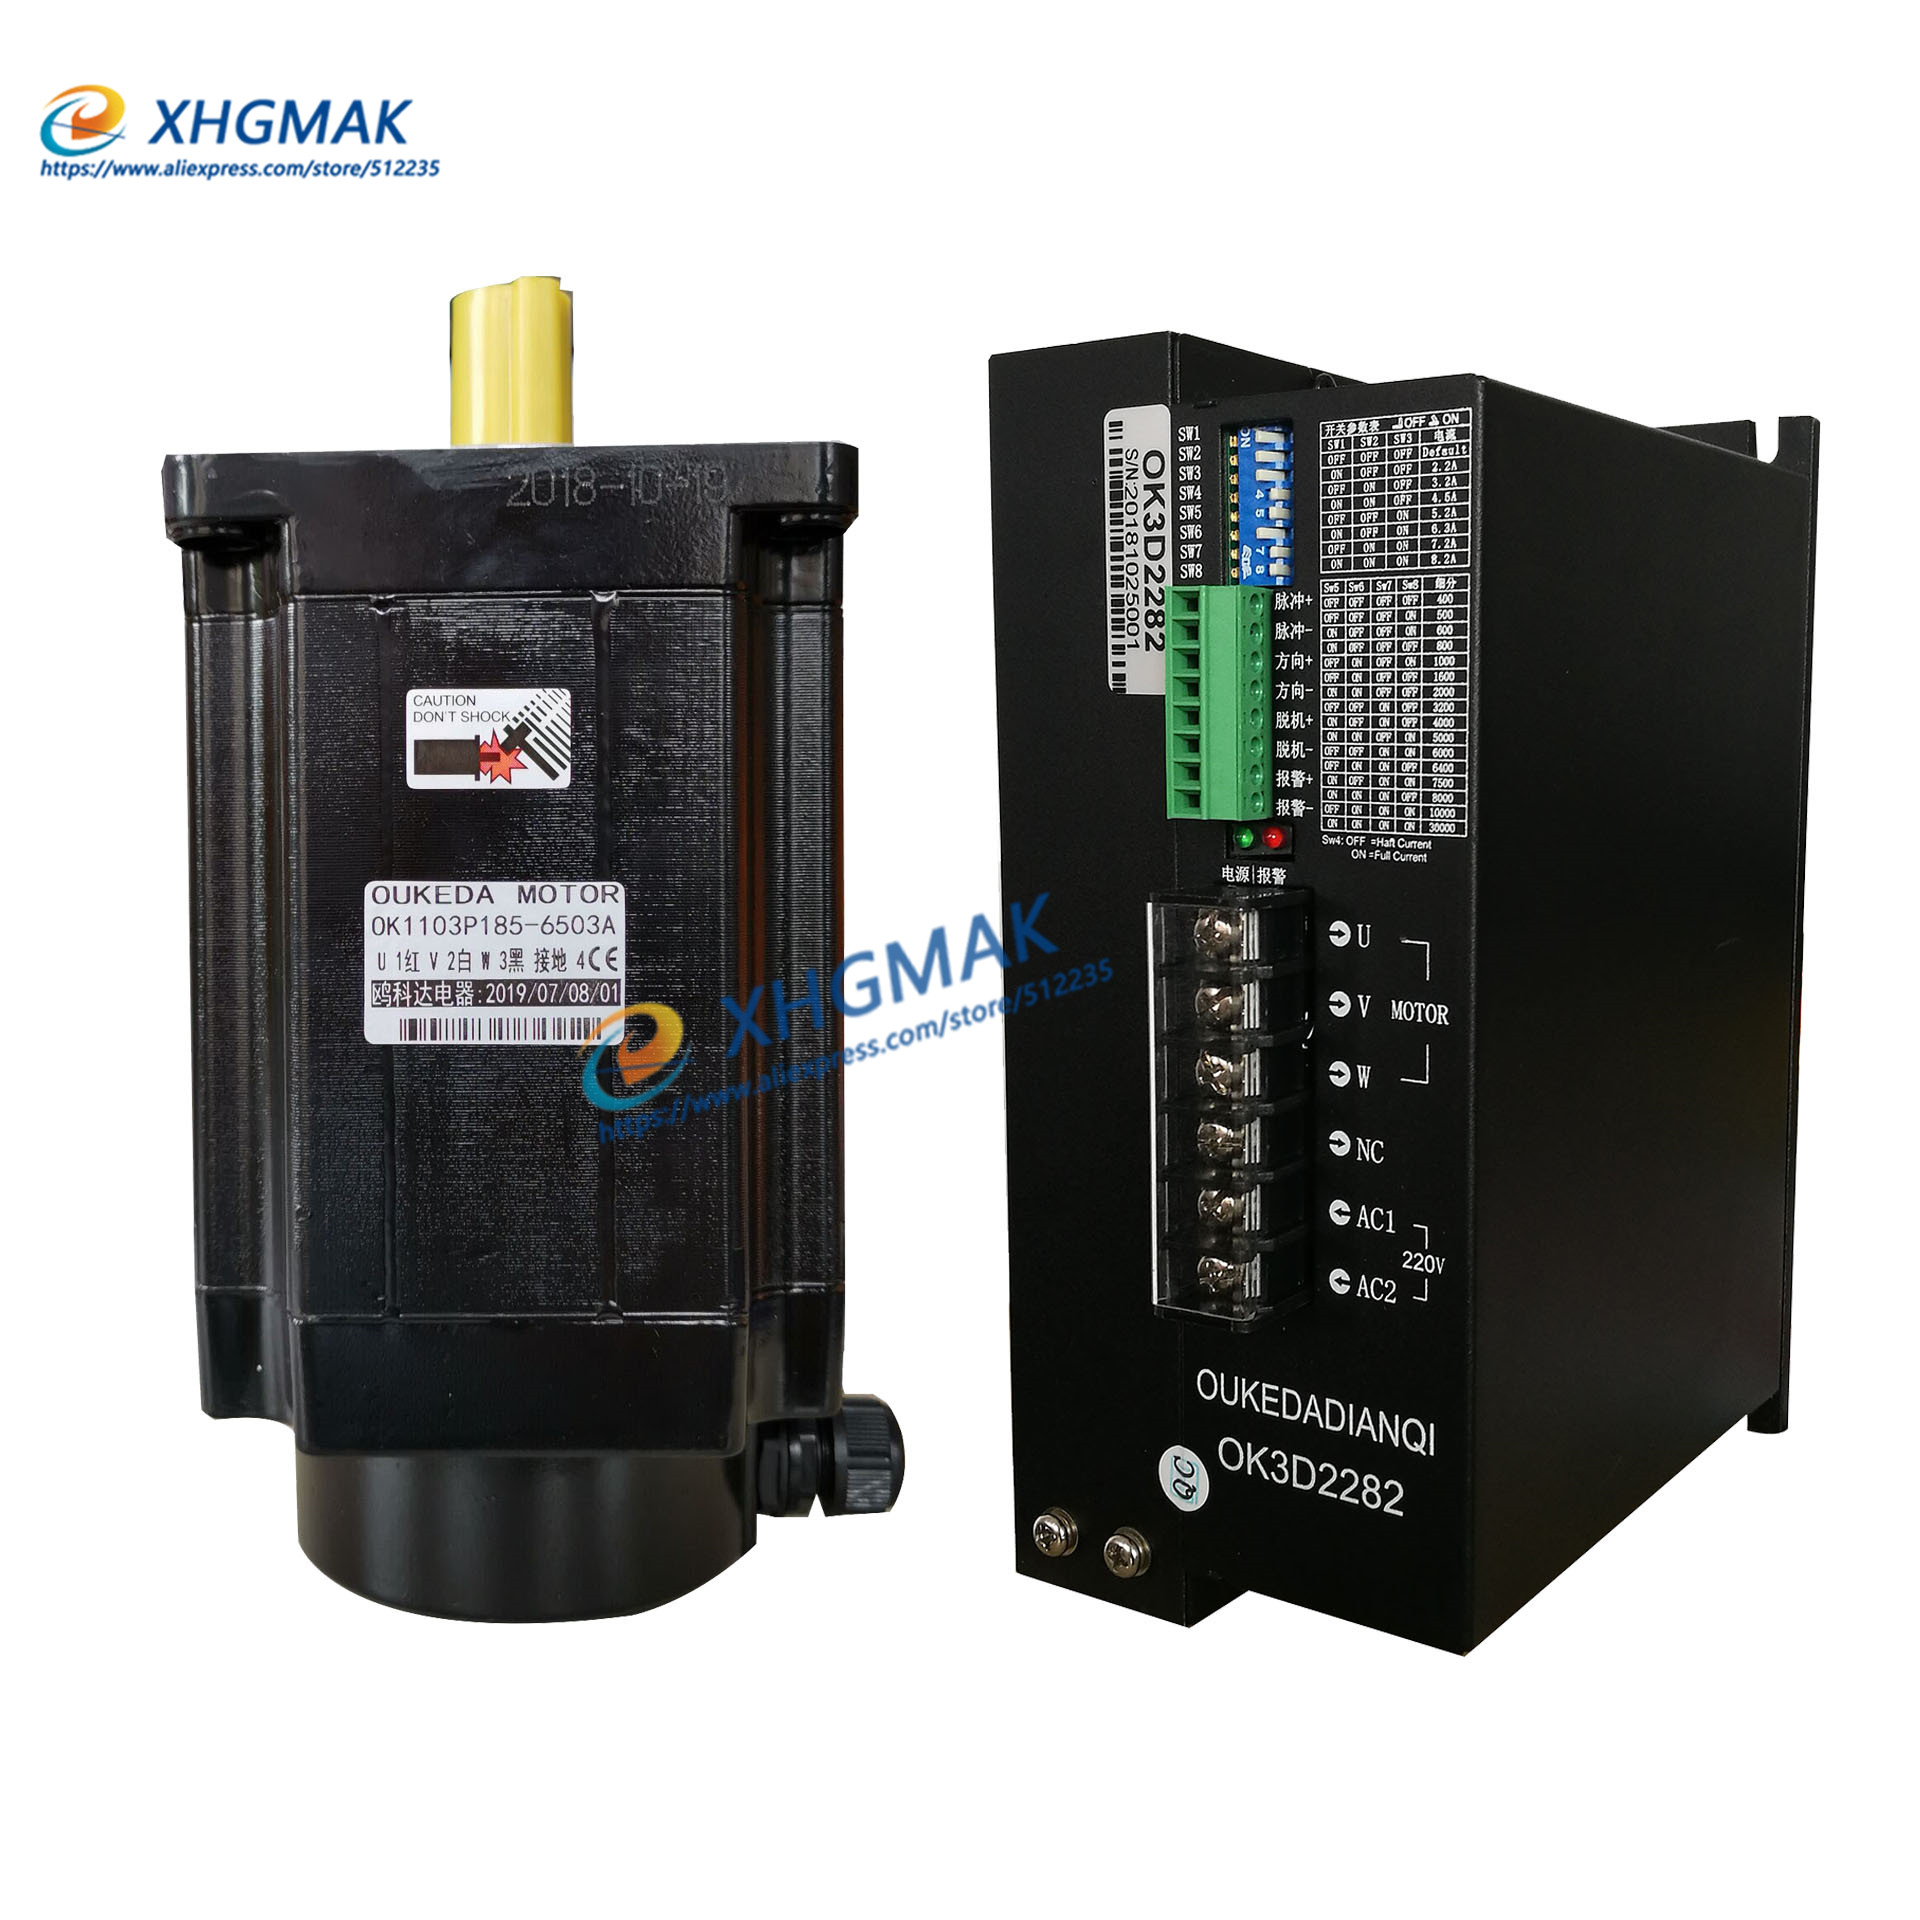 2018 Precision MCU PFC Compact Digital Adjustable DC Power Supply Laboratory Phone Switching Power Supply 65V